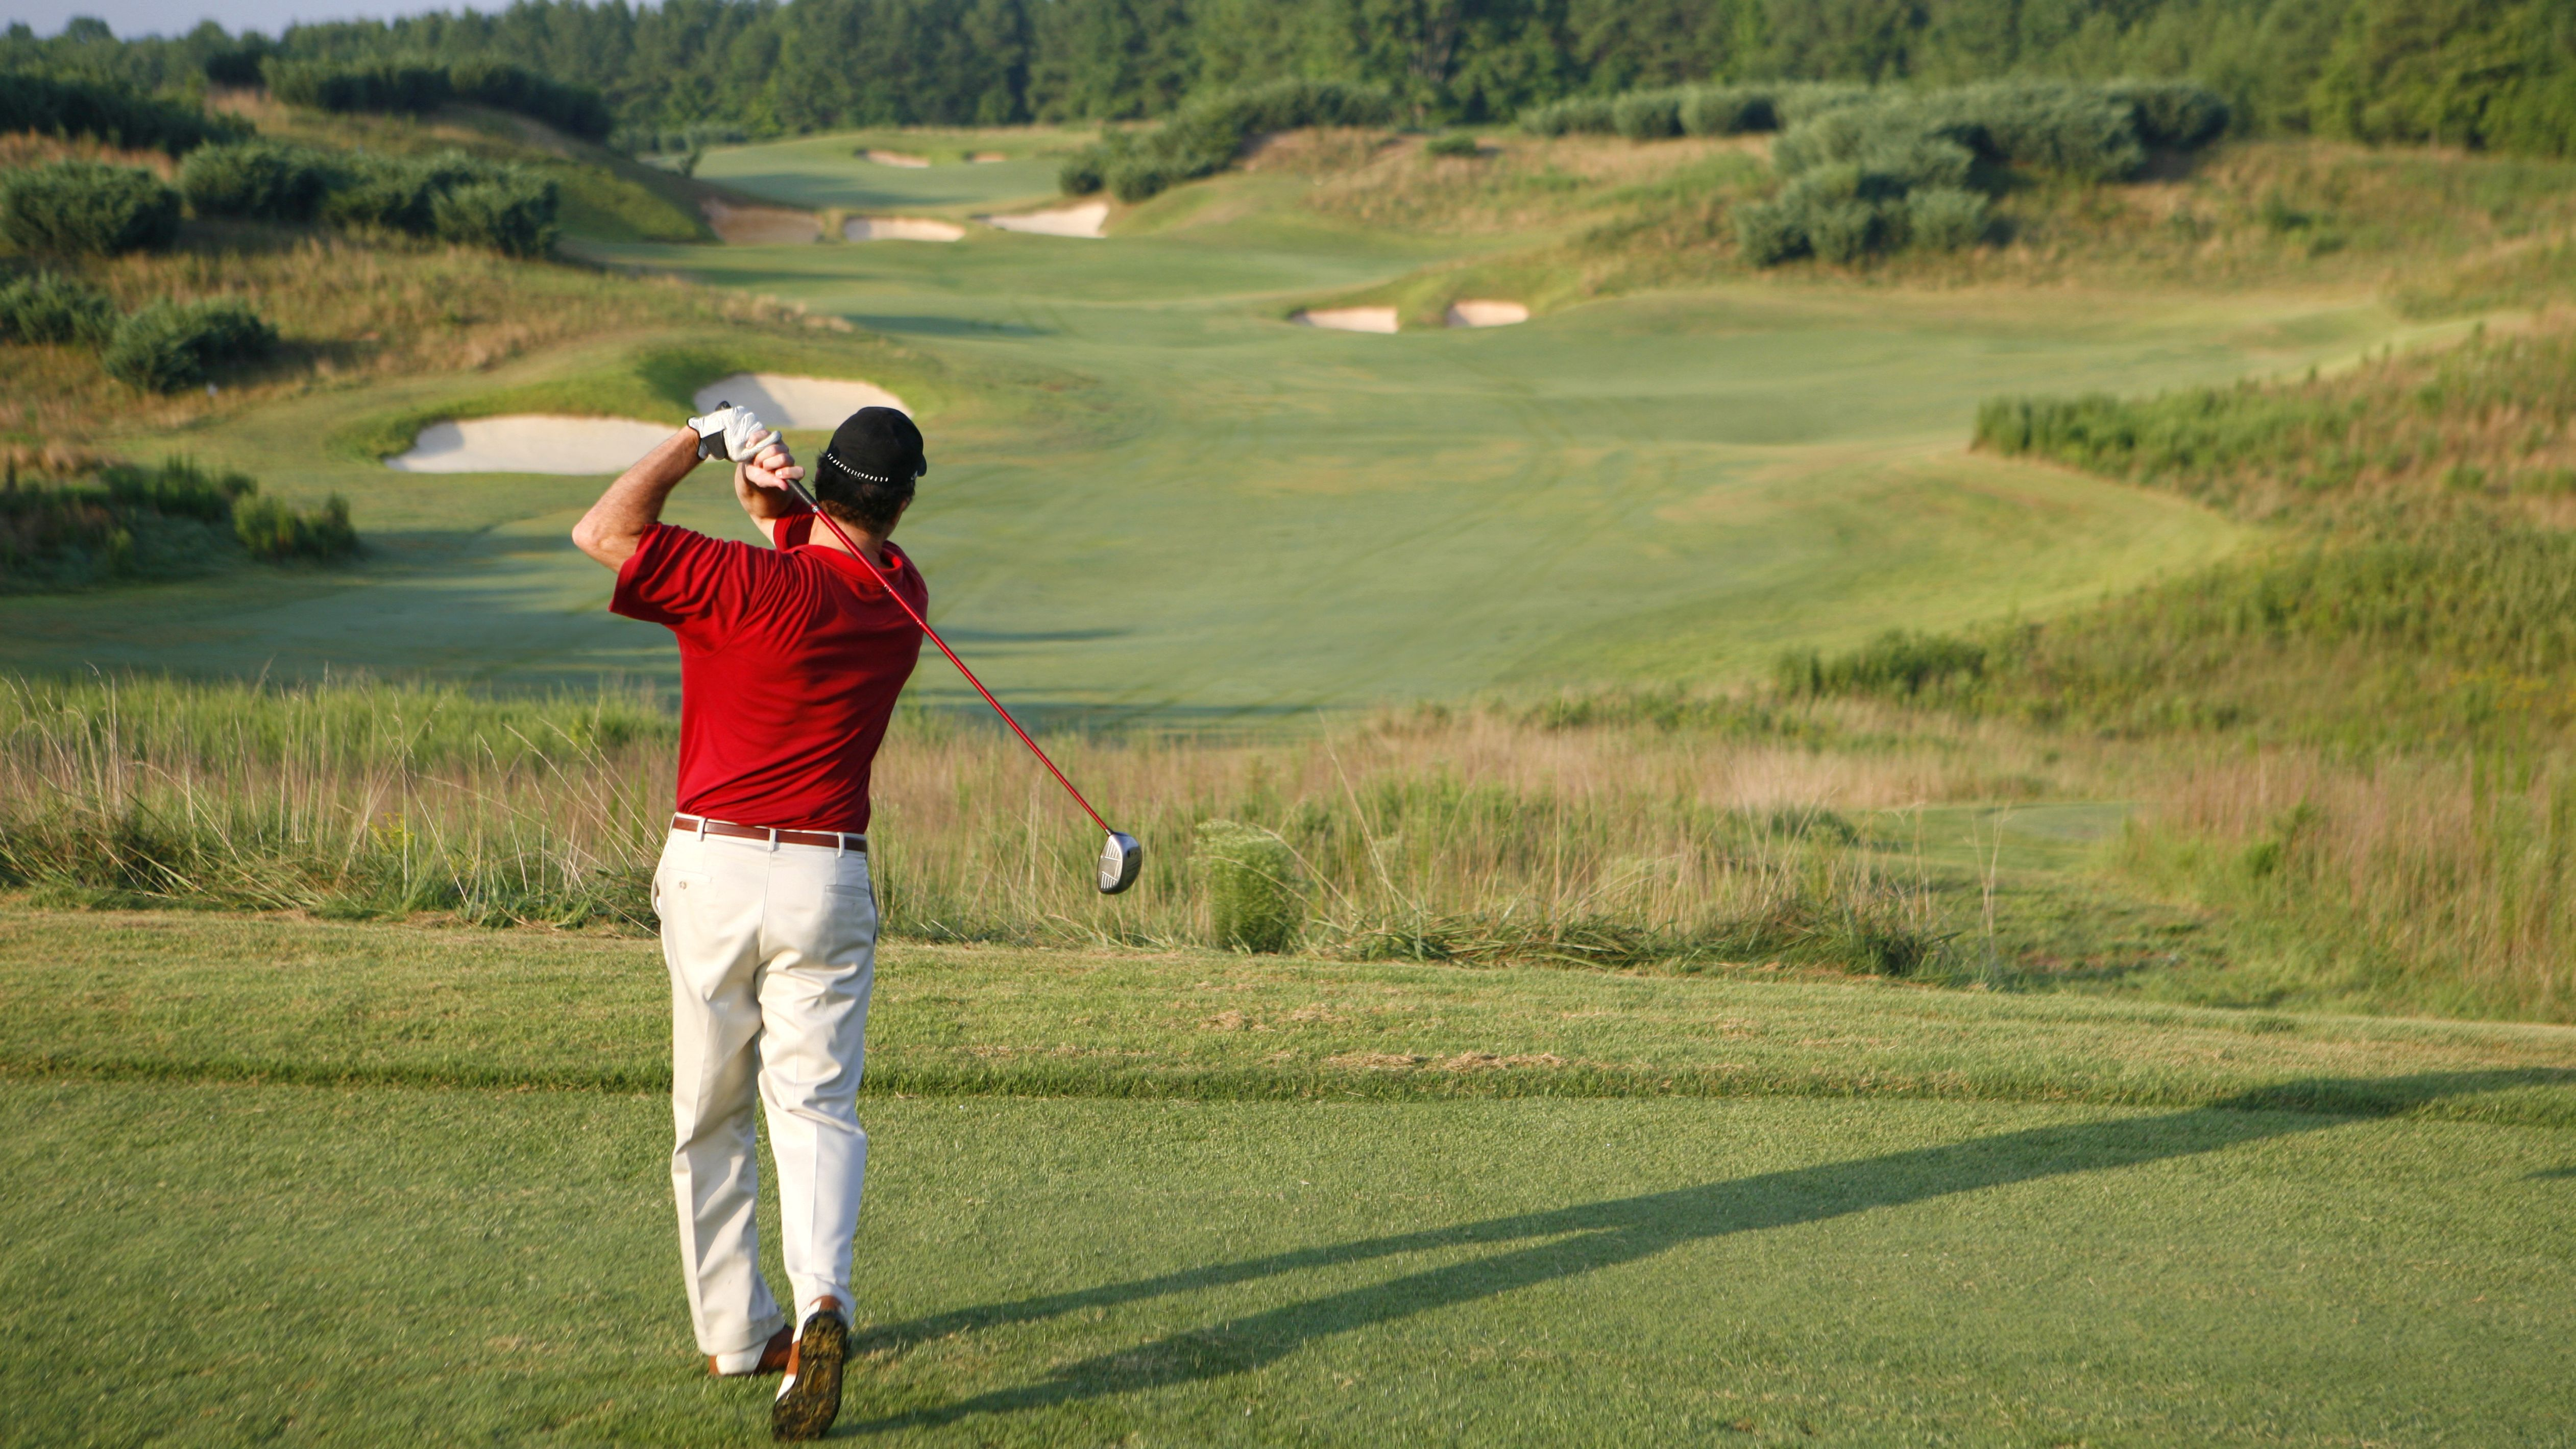 How to Diagnose and Correct a Slice in Golf